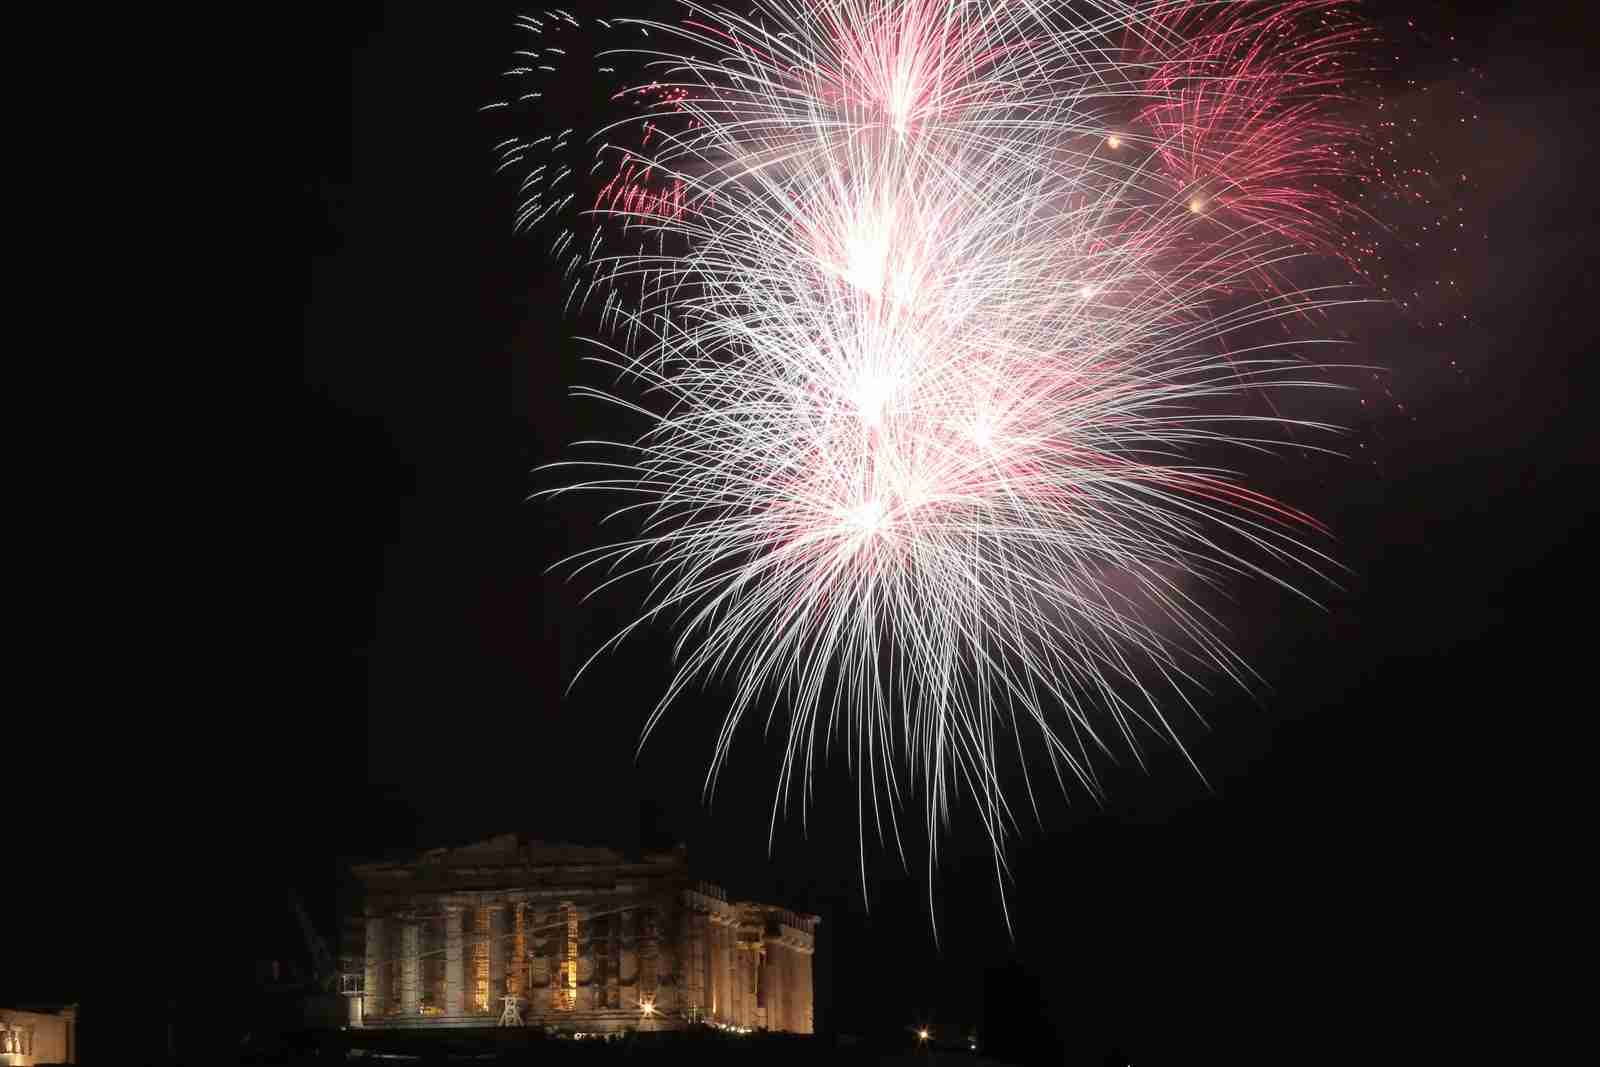 Fireworks explode over the Parthenon temple atop the Athens Acropolis hill during New Year